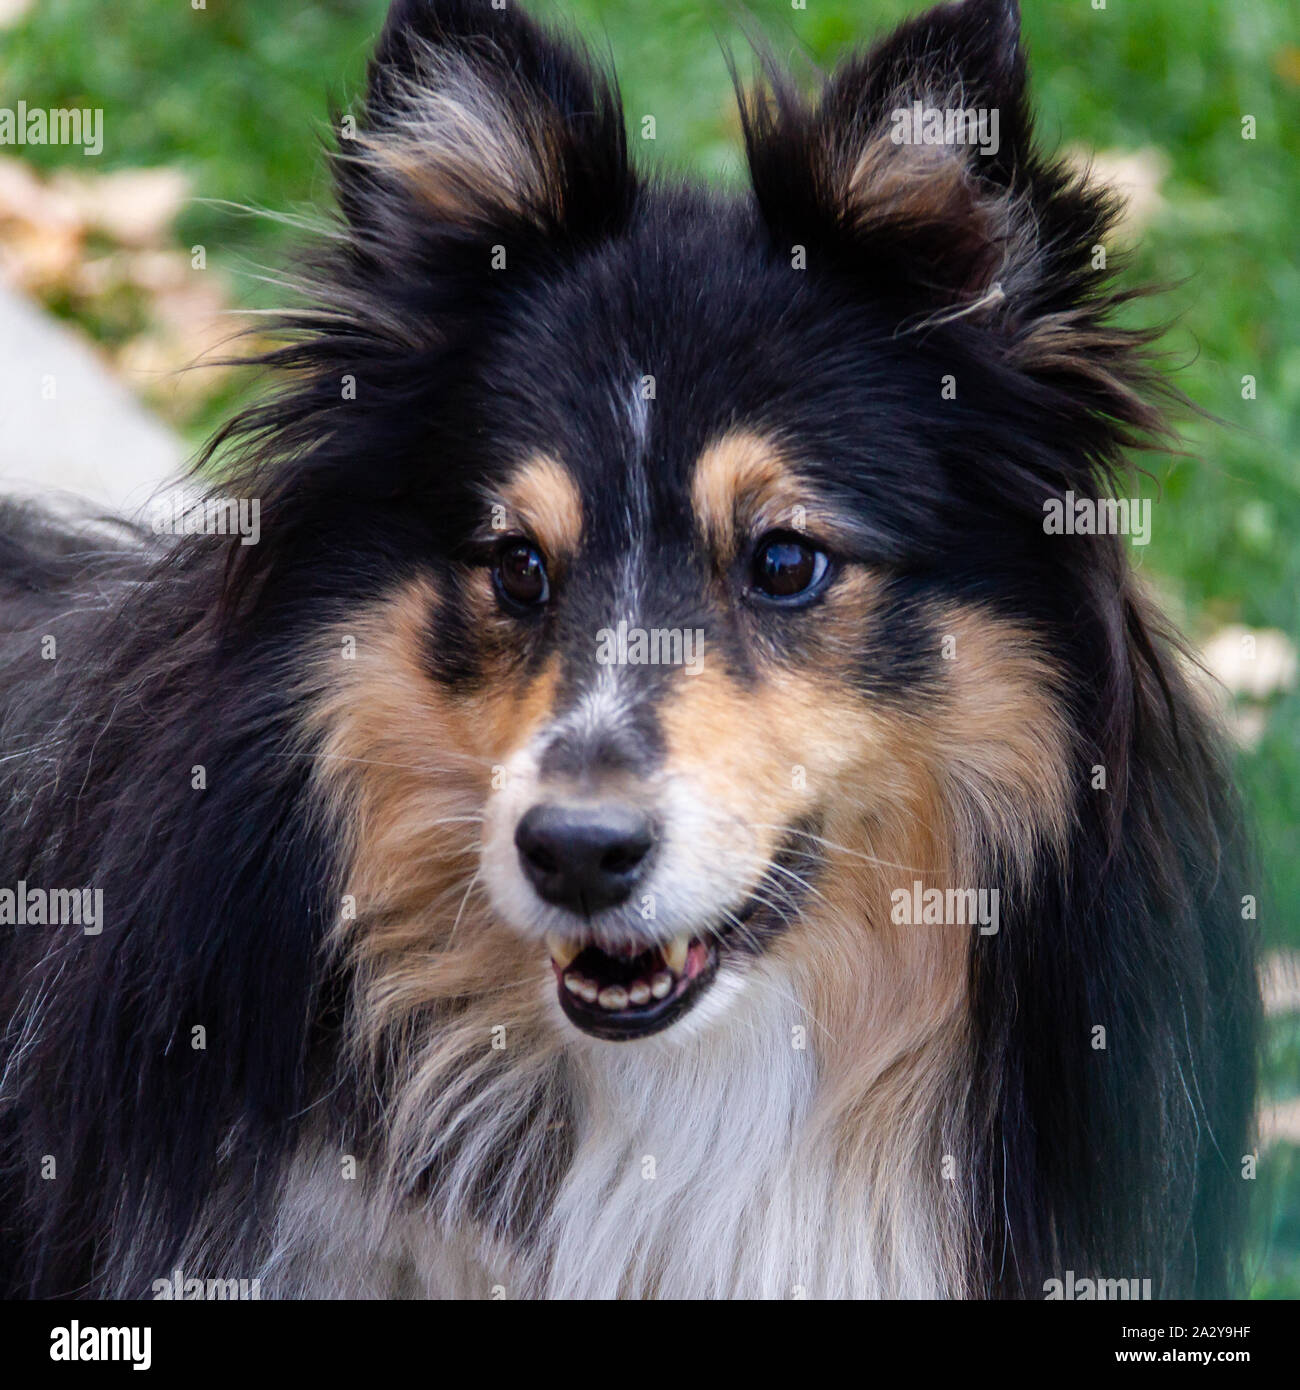 Sheltie or Shetland Sheepdog has traditionally been used as a shepherd dog. This adorable dog with a furry collar is often mistaken for a mini version Stock Photo